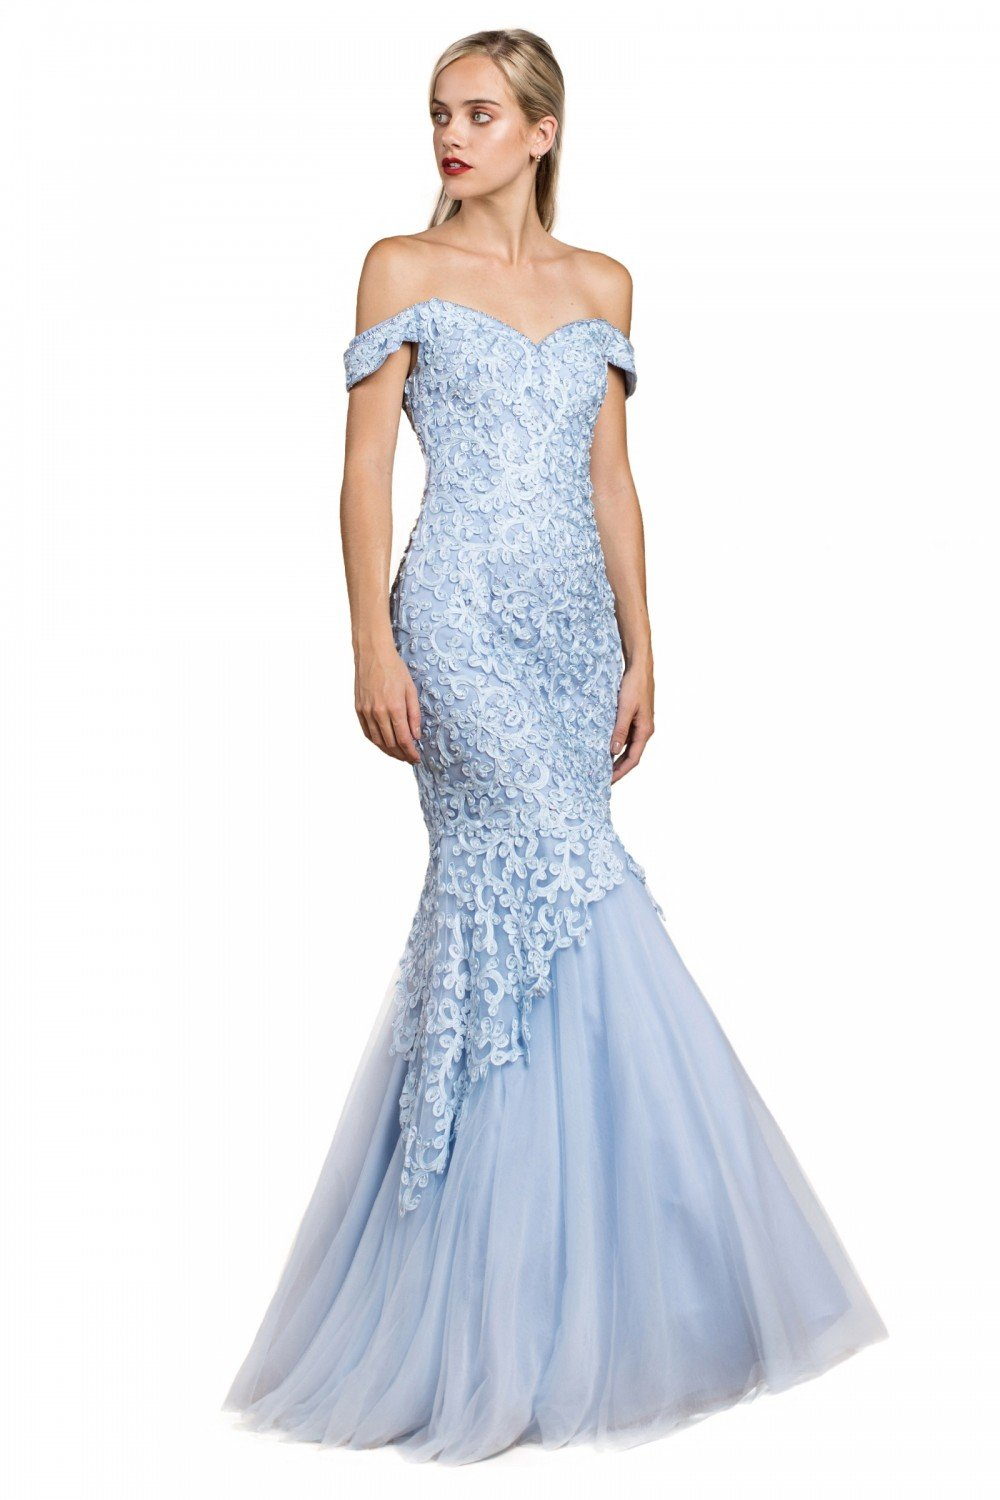 Cinderella Divine - A0401SC Off Shoulder Lace Overlay Tulle Mermaid Gown